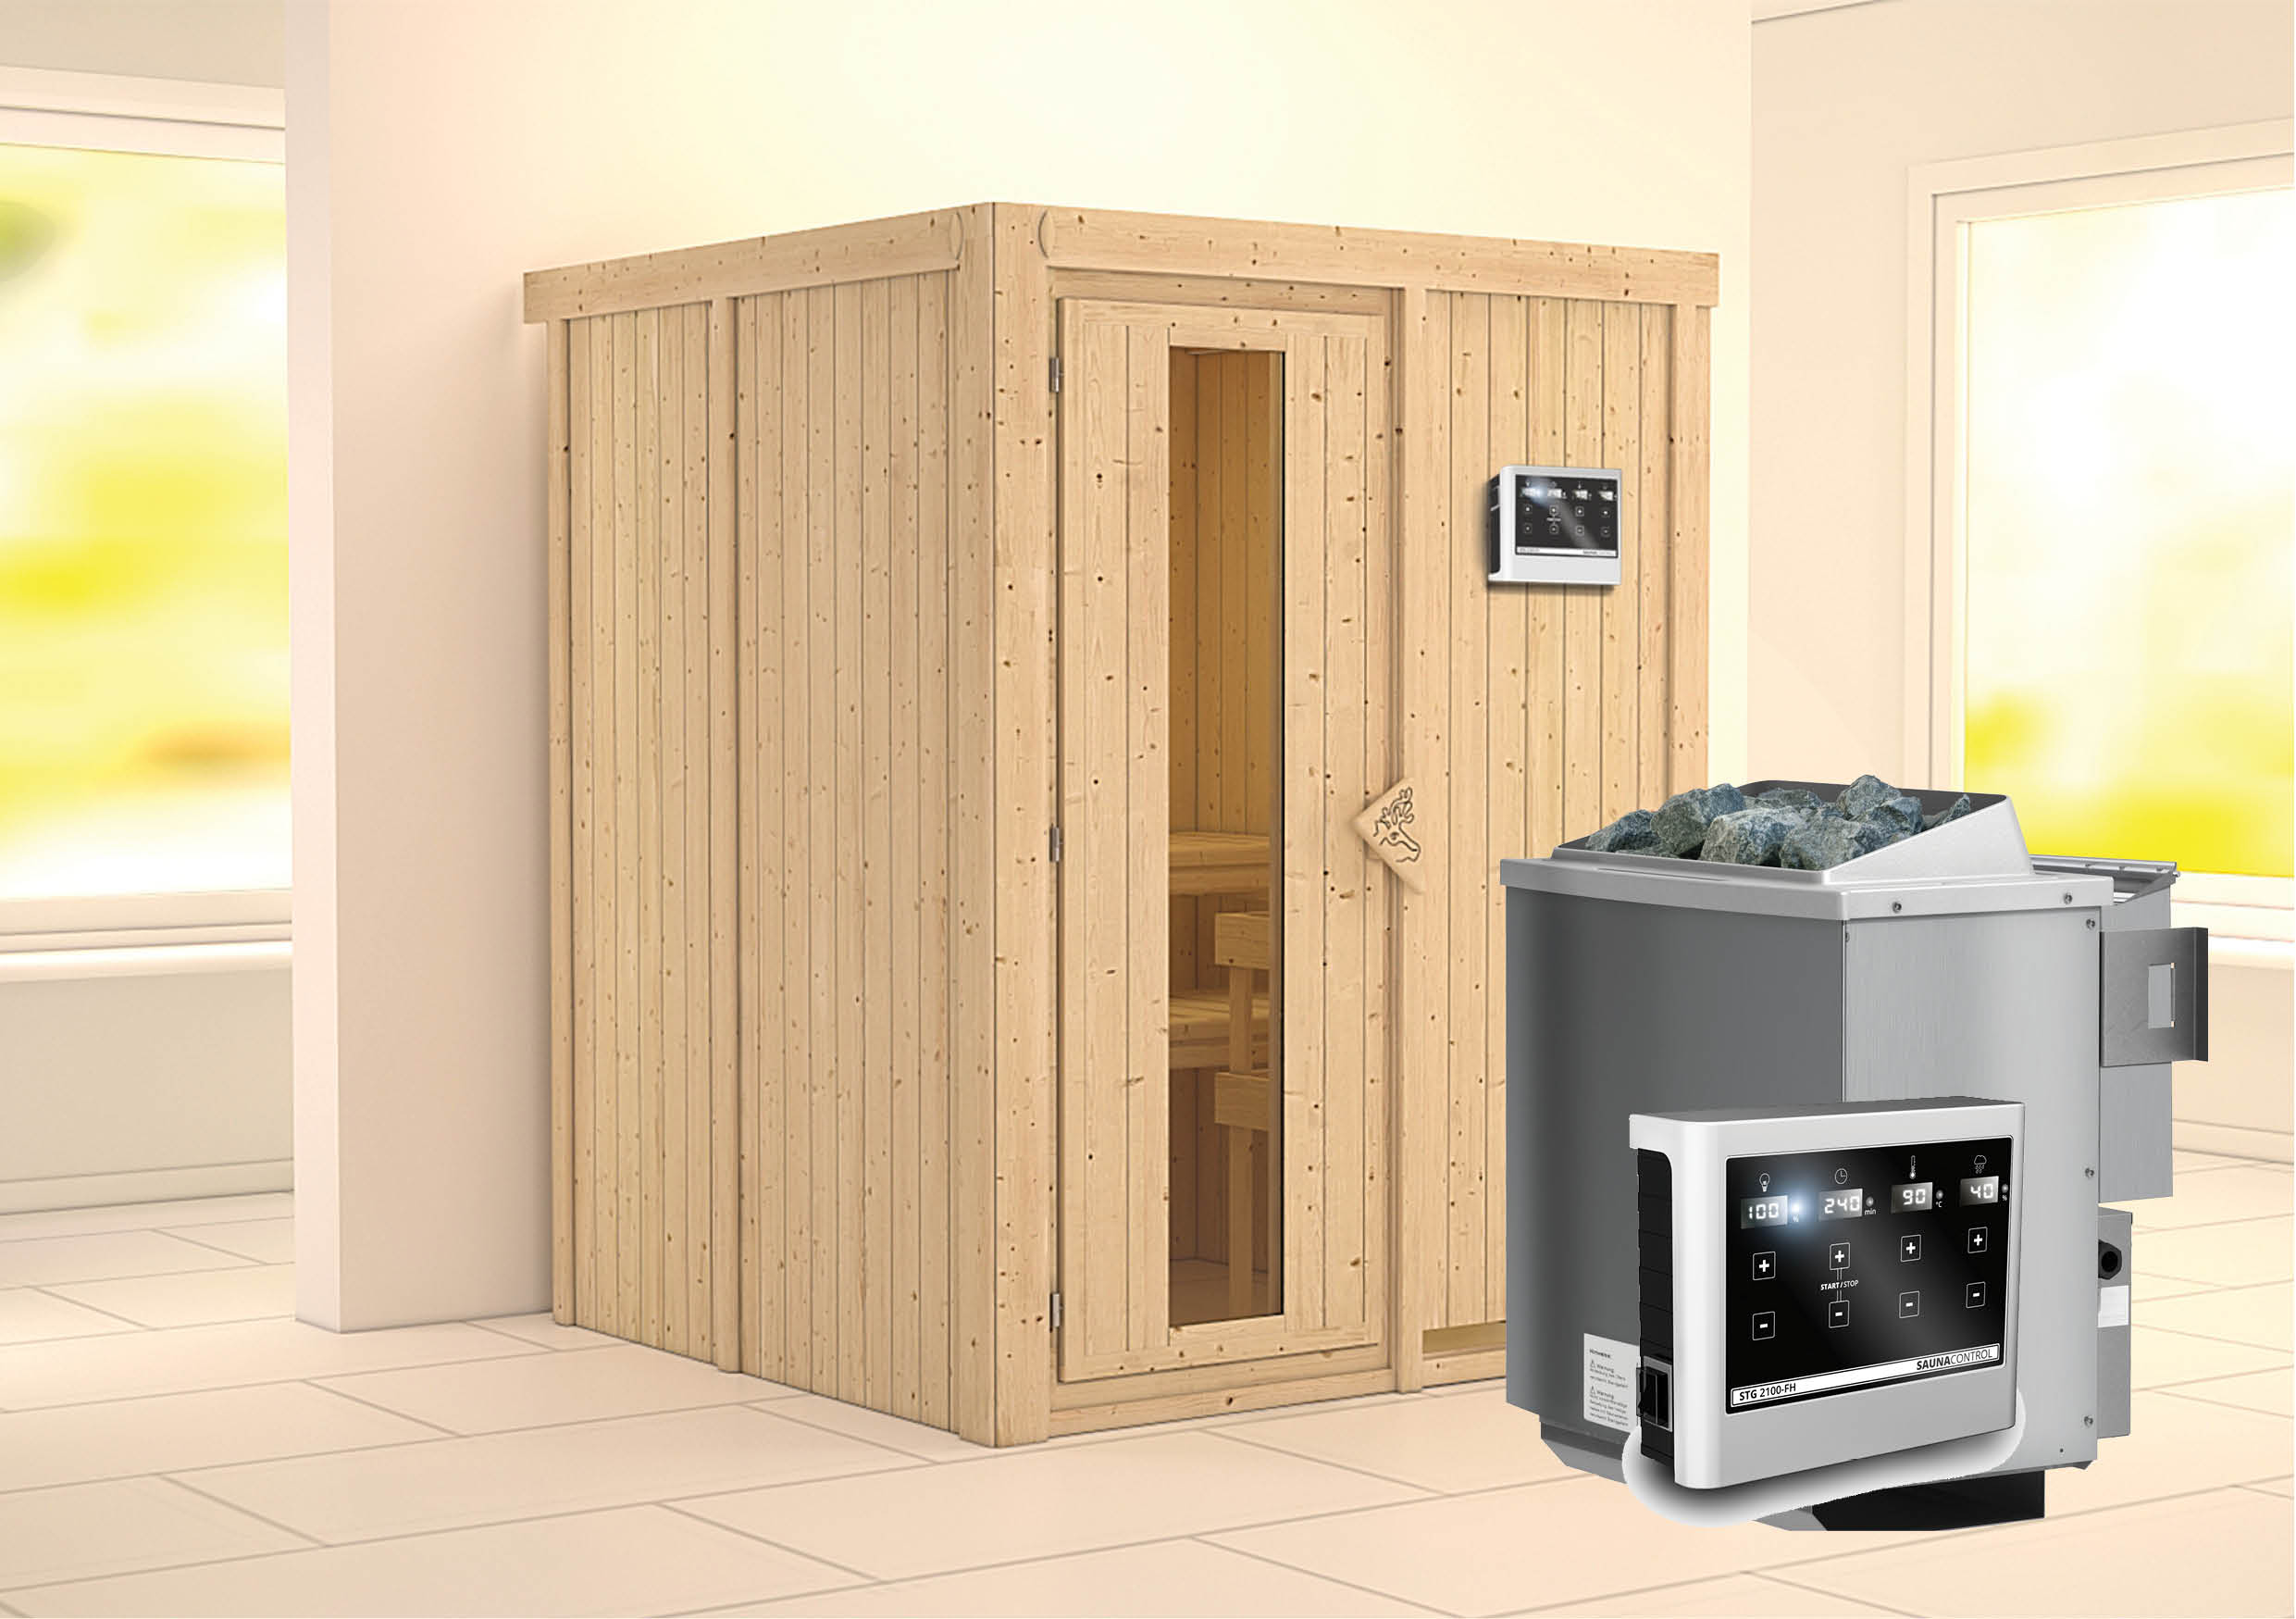 karibu sauna norin 1 51 x 1 51 m 68 mm mit 9 kw ofen saunakabine elementsauna ebay. Black Bedroom Furniture Sets. Home Design Ideas